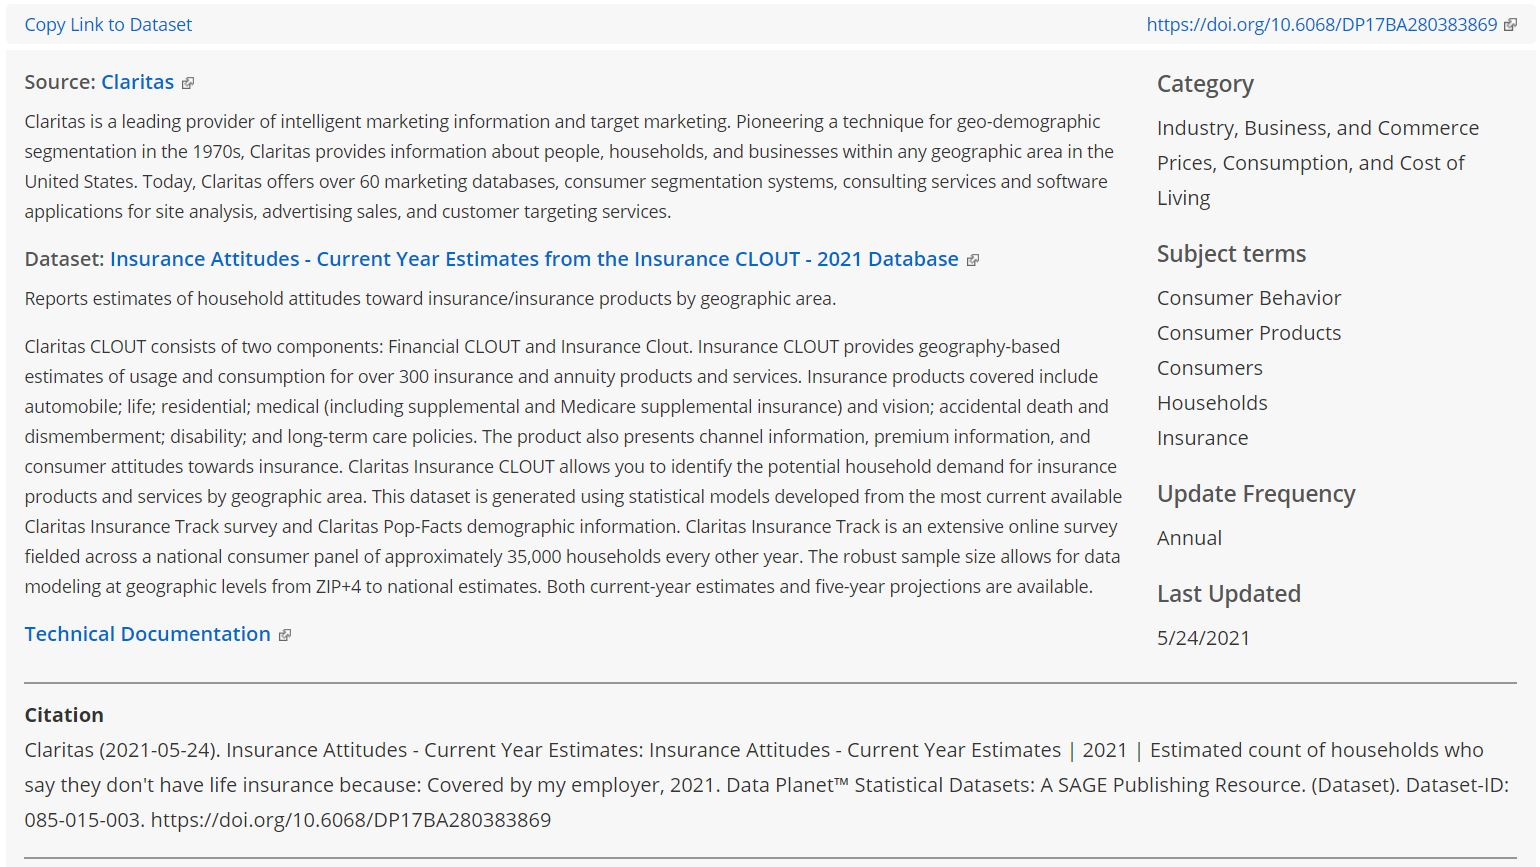 Screen grab featuring the source, dataset, and indicator descriptions and other metadata for a dataset from Claritas.